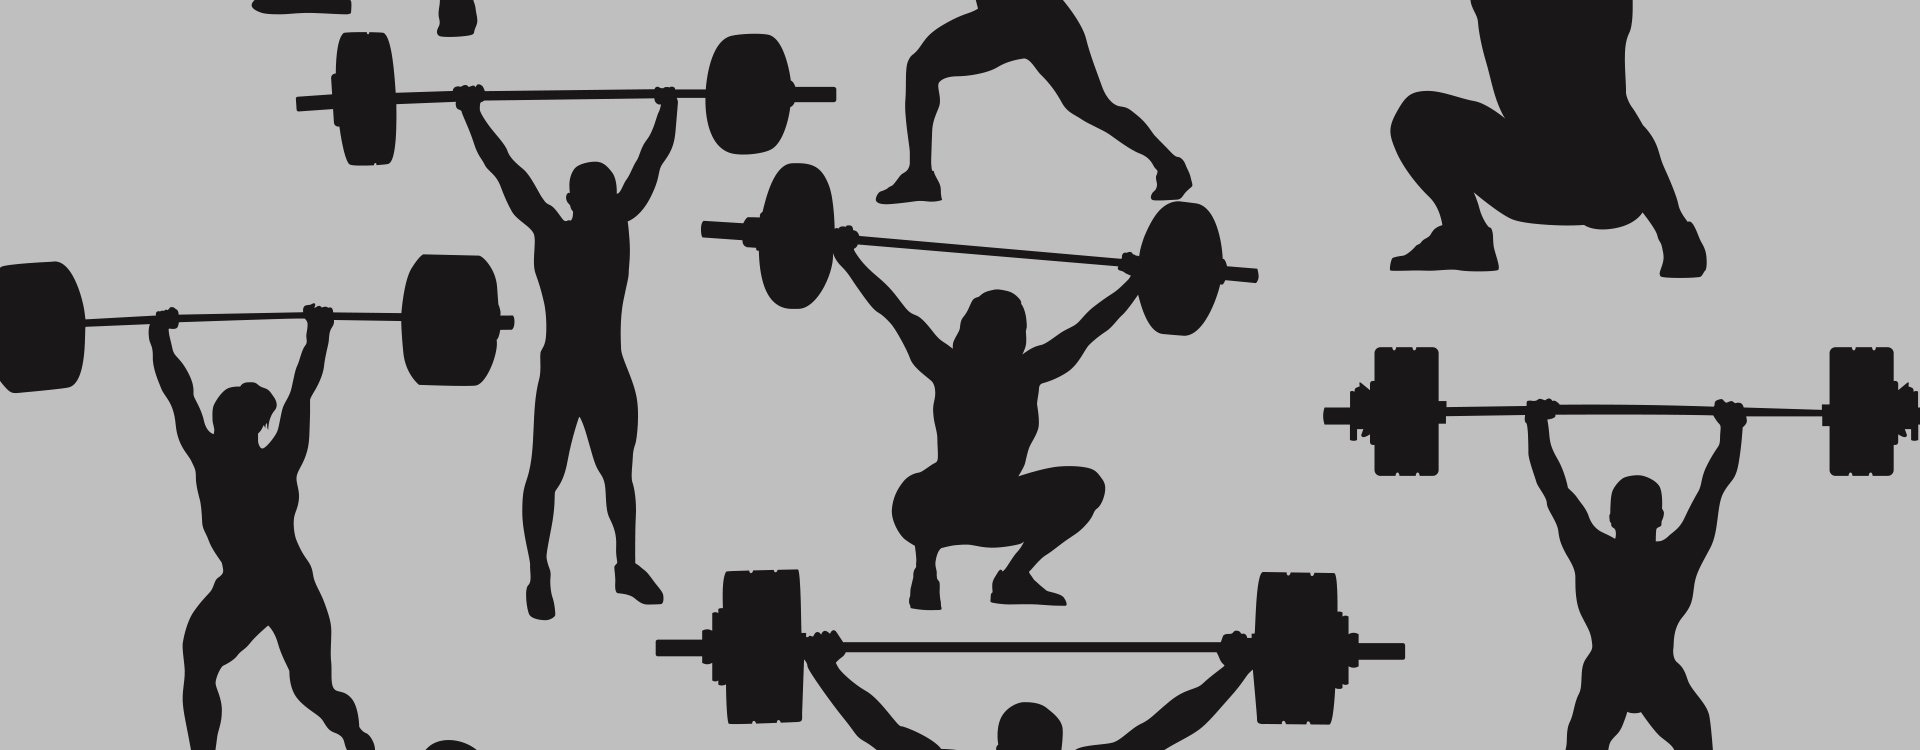 Weight lifting - From Olympic sport to gym fitness